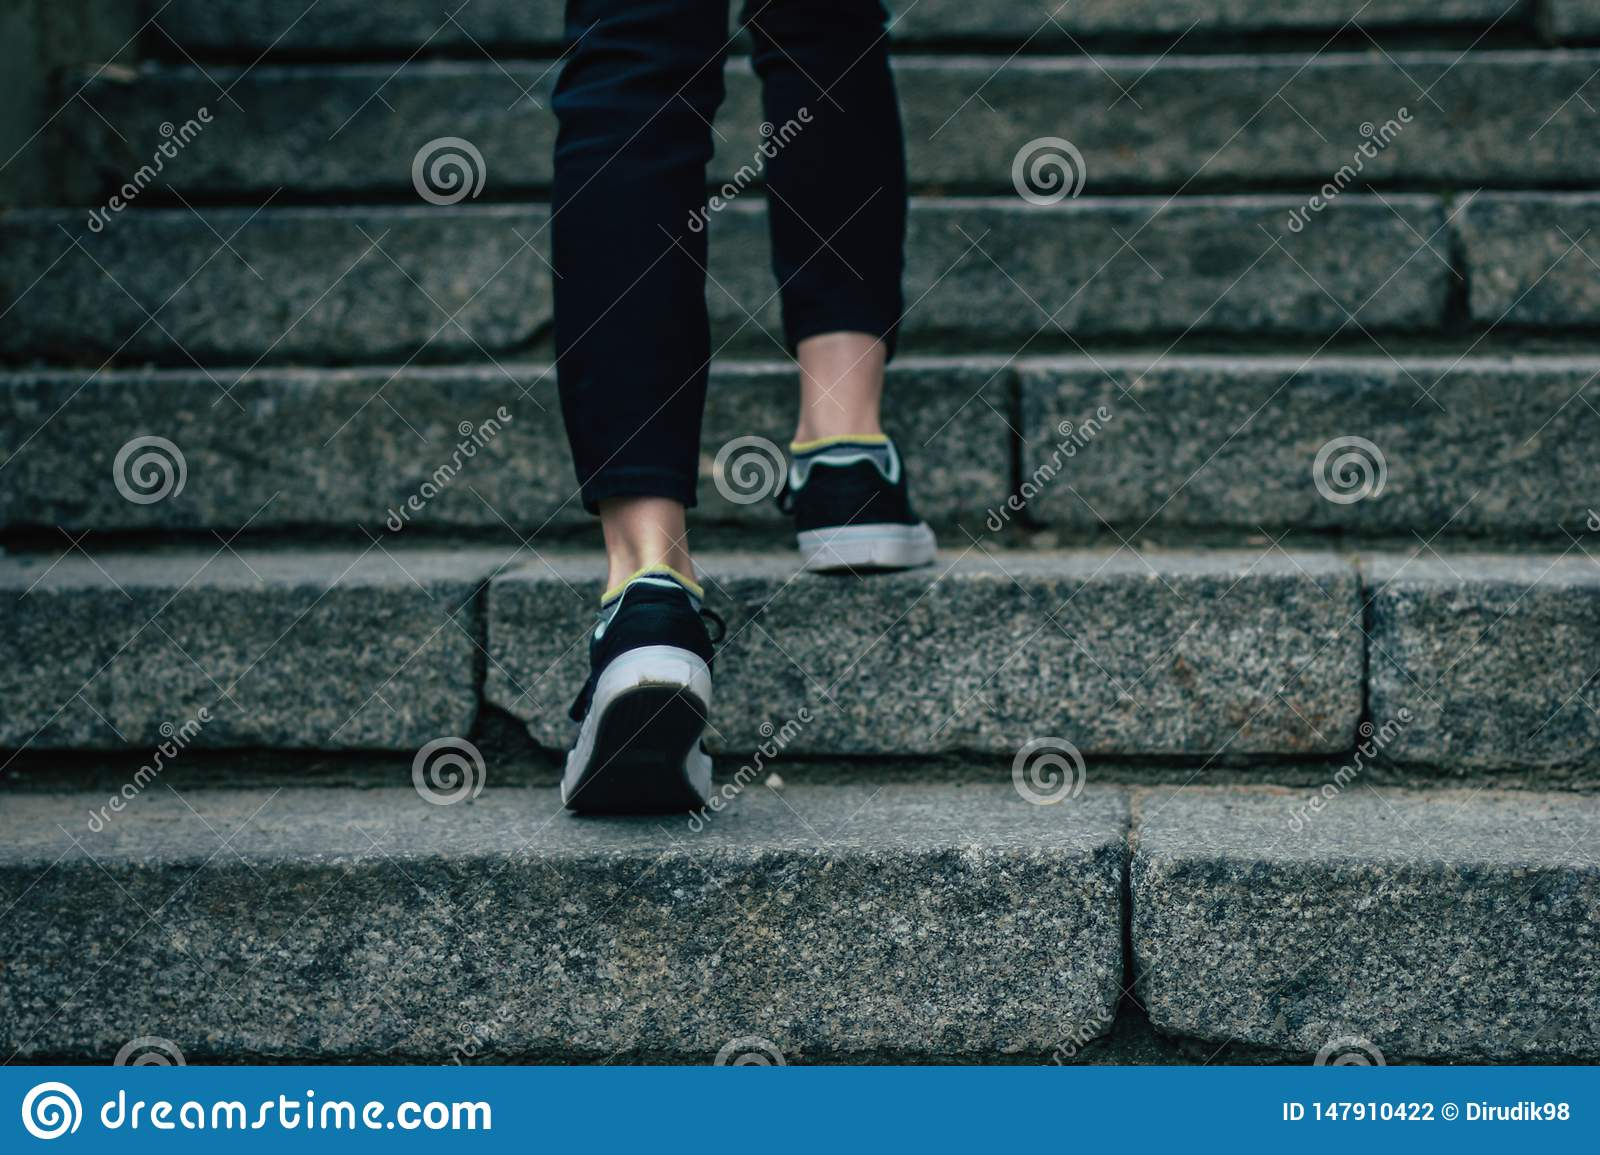 The girl climbs on concrete stairs